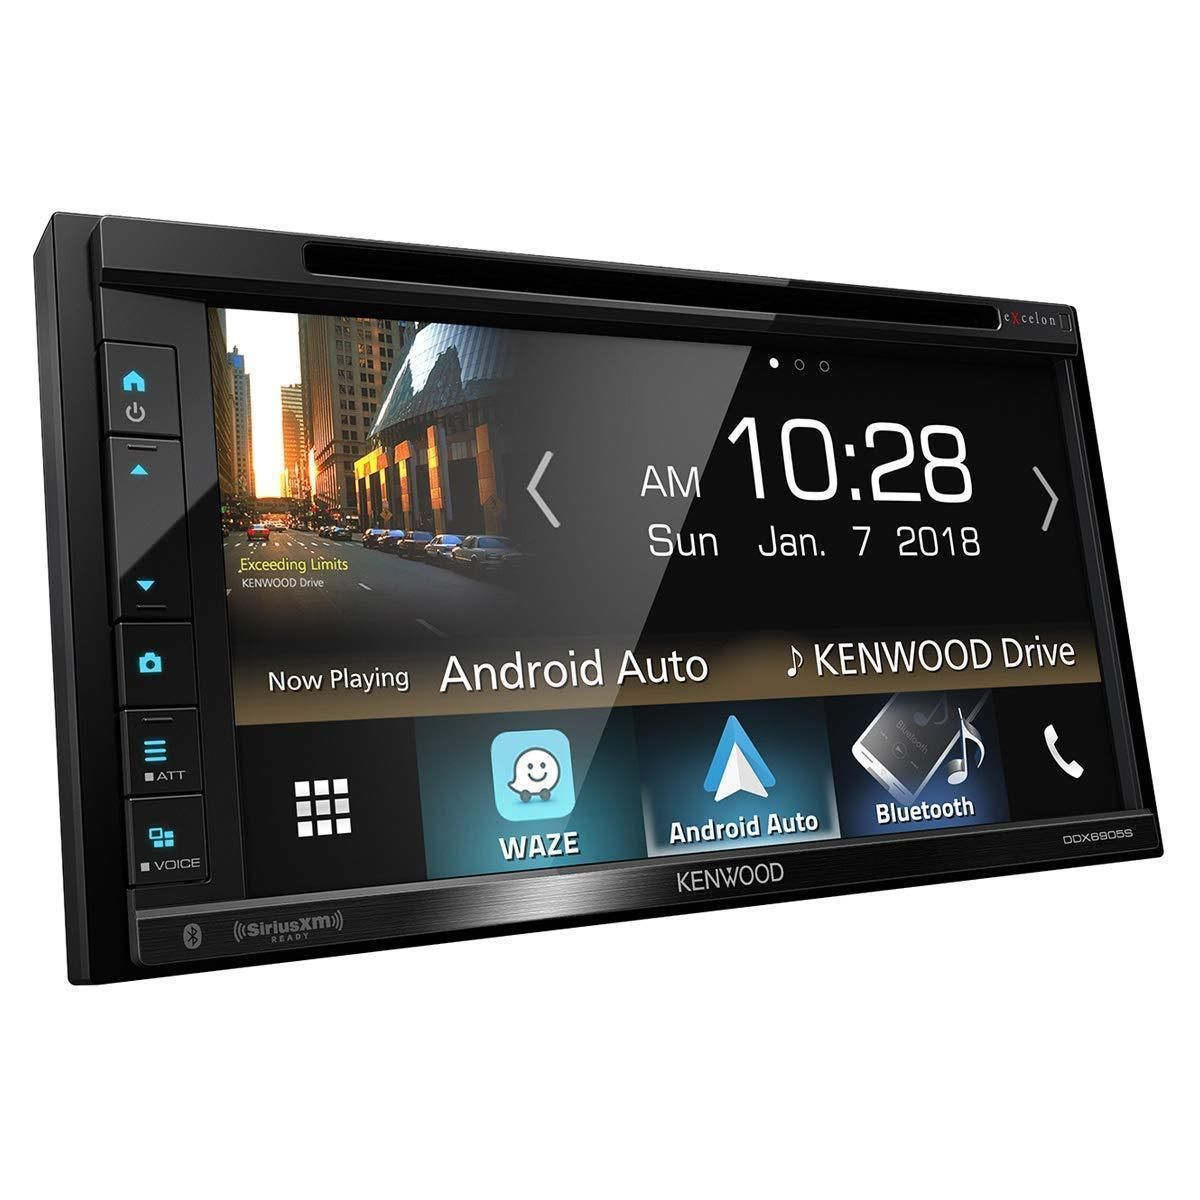 kenwood dnx890hd excelon 6 95 double din navigation dvd receiver by kenwood 1199 00 the dnx890hd features the latest i  [ 1200 x 1200 Pixel ]